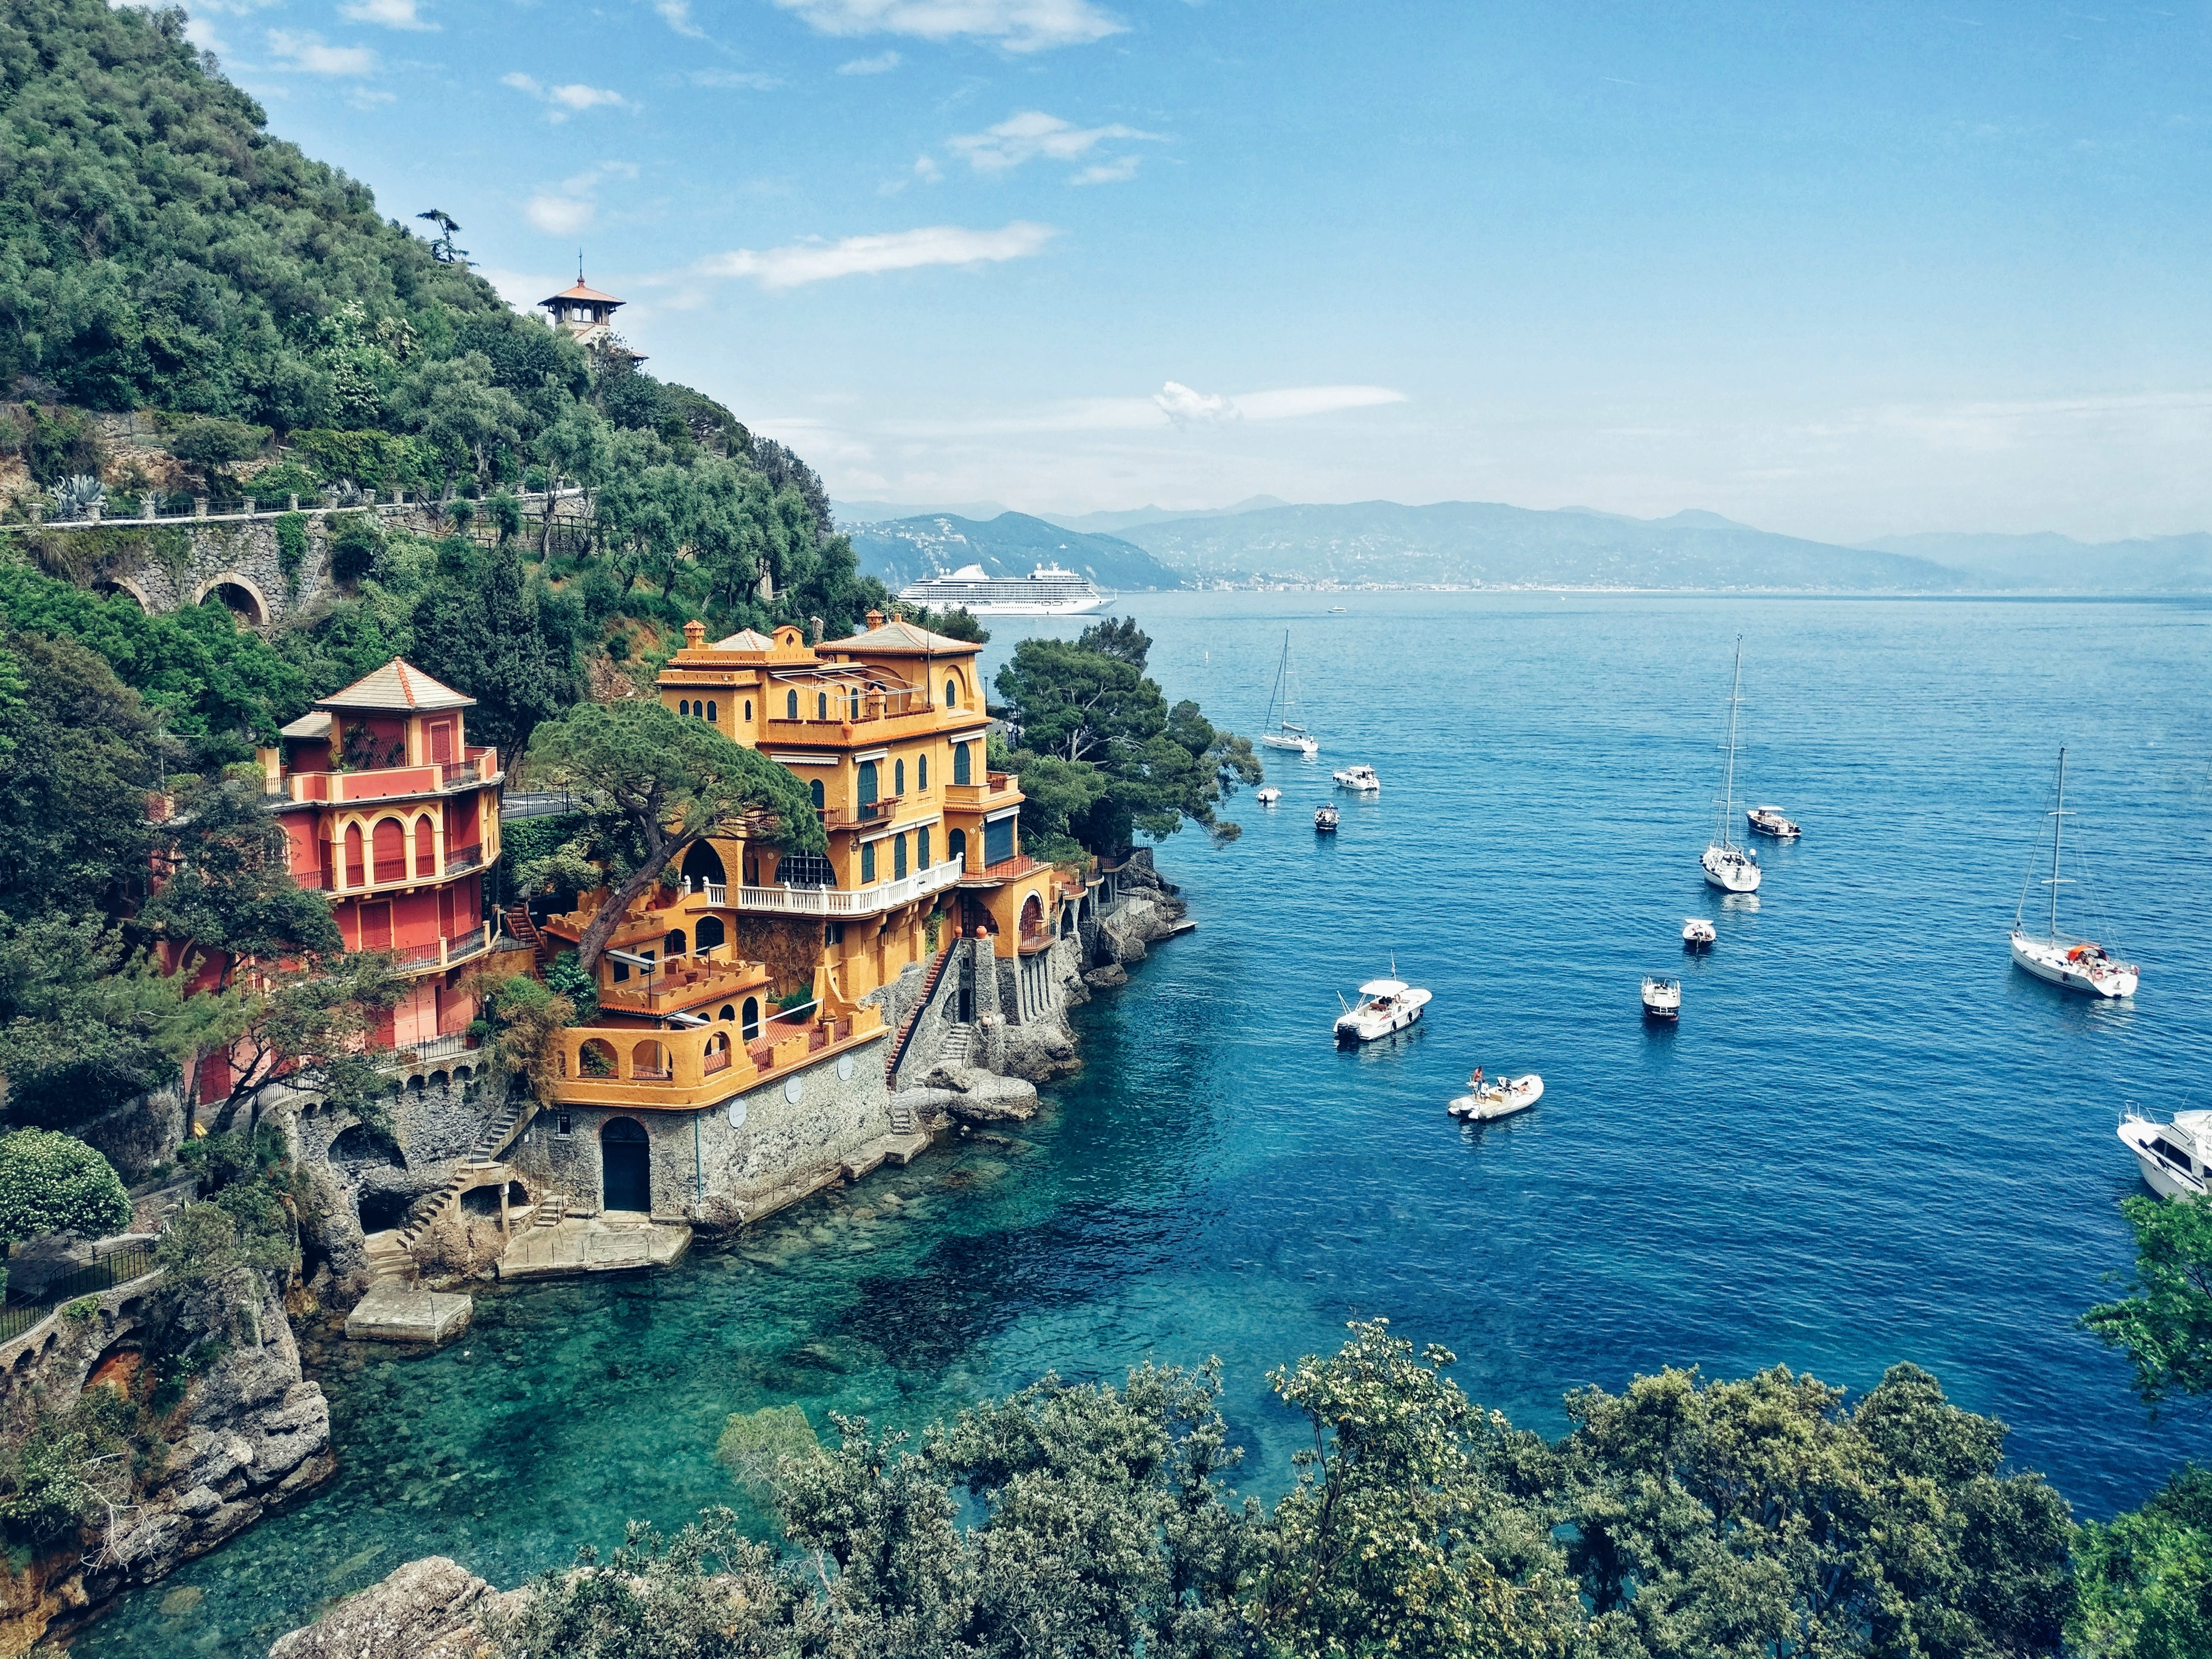 Immerse Yourself in Endless Historic and Scenic Beauty on Your Italy Honeymoon